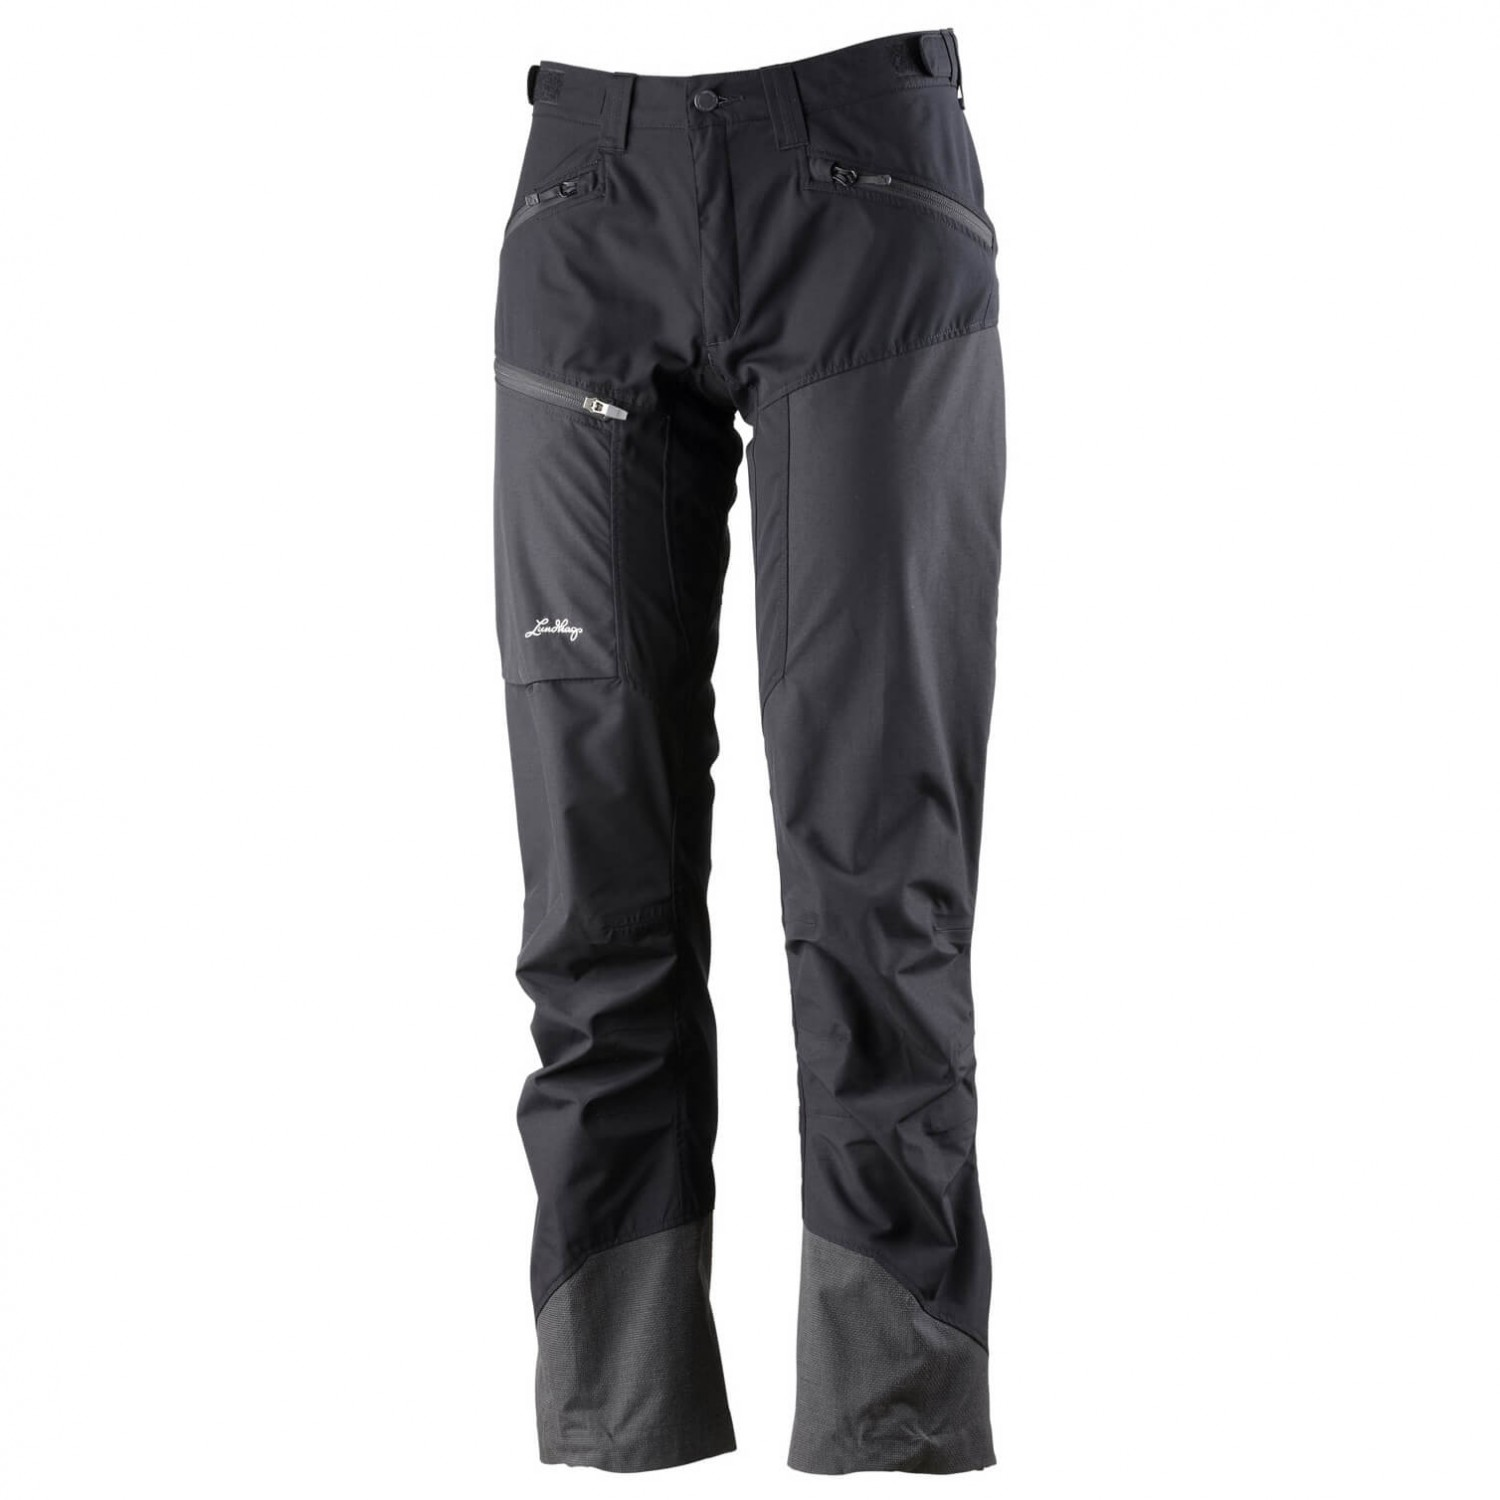 Find great deals on eBay for trek pants. Shop with confidence.